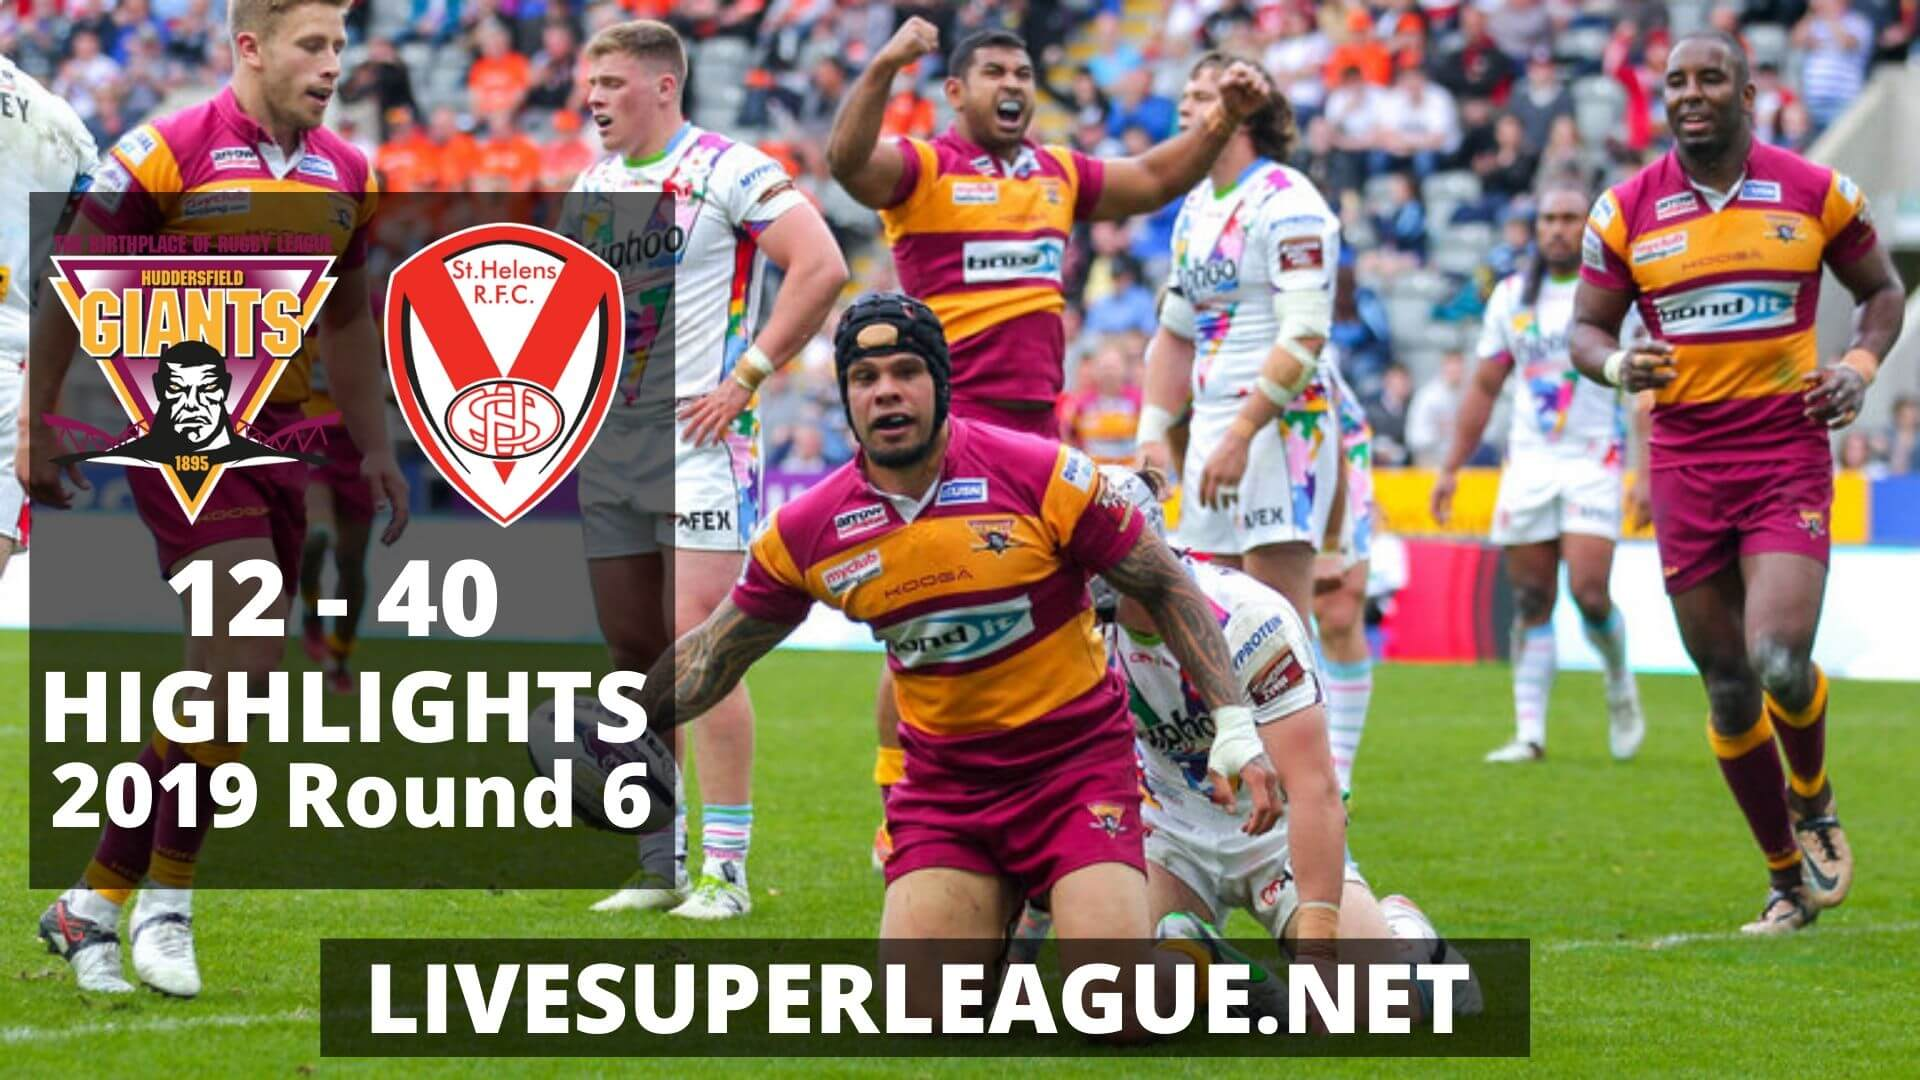 Huddersfield Giants vs St Helens Highlights 2019 Round 6